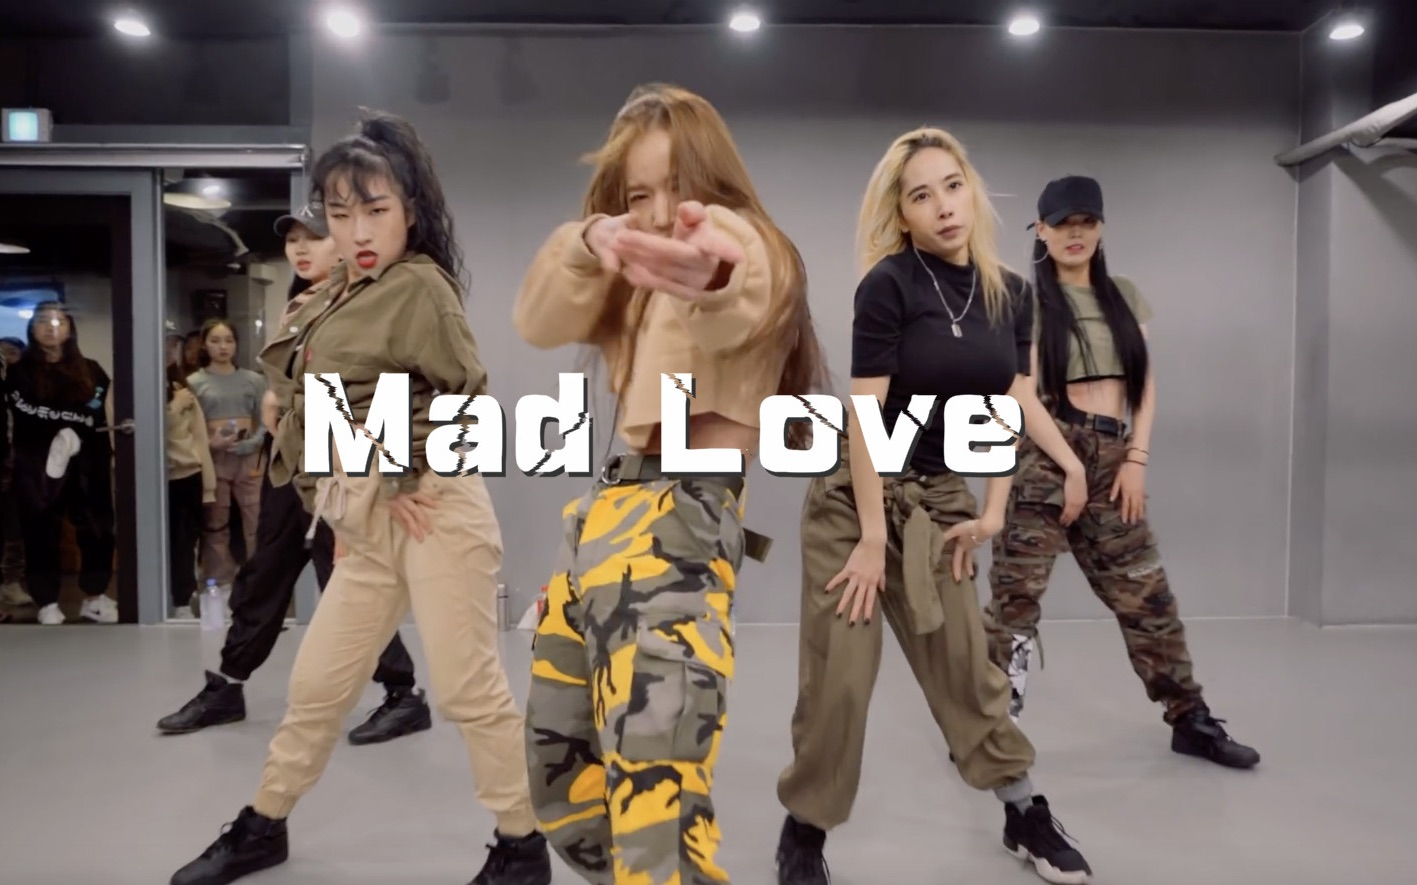 Mad Love - Sean Paul, David Guetta ft. Becky G ⁄ Yeji Kim编舞 【1M舞室】